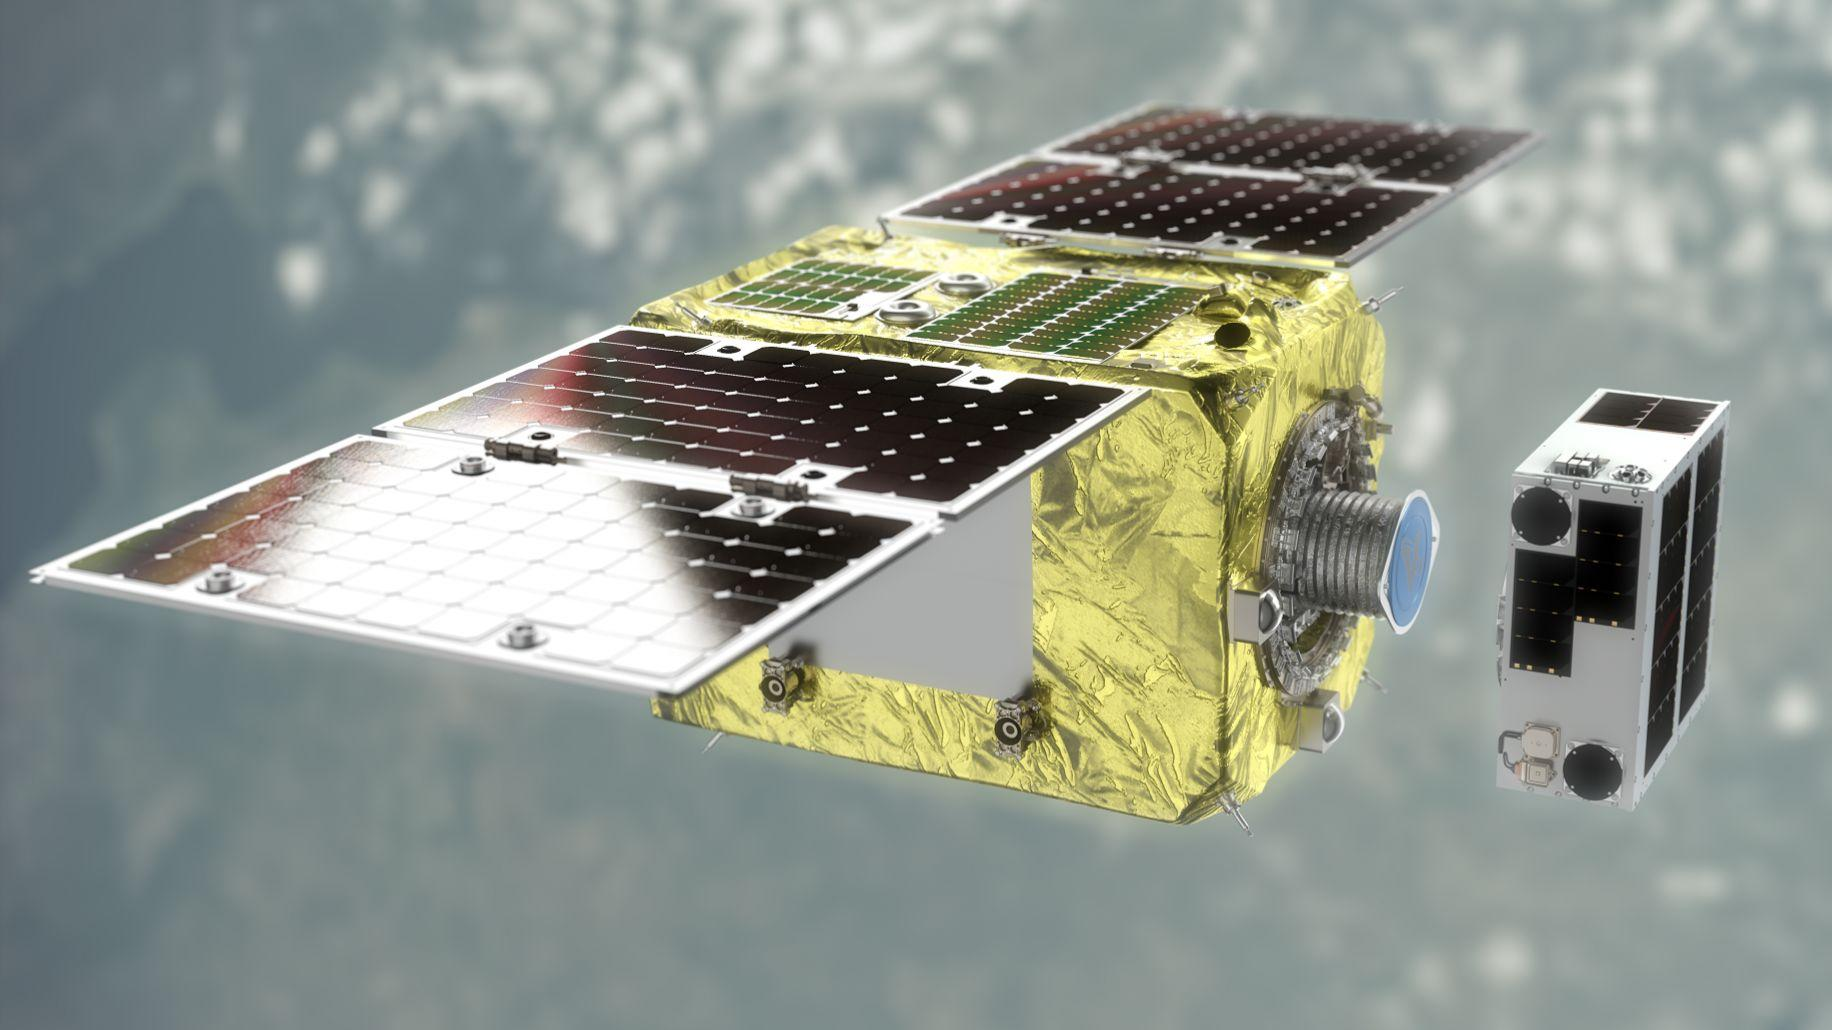 Astroscale space debris removal demo set for launch